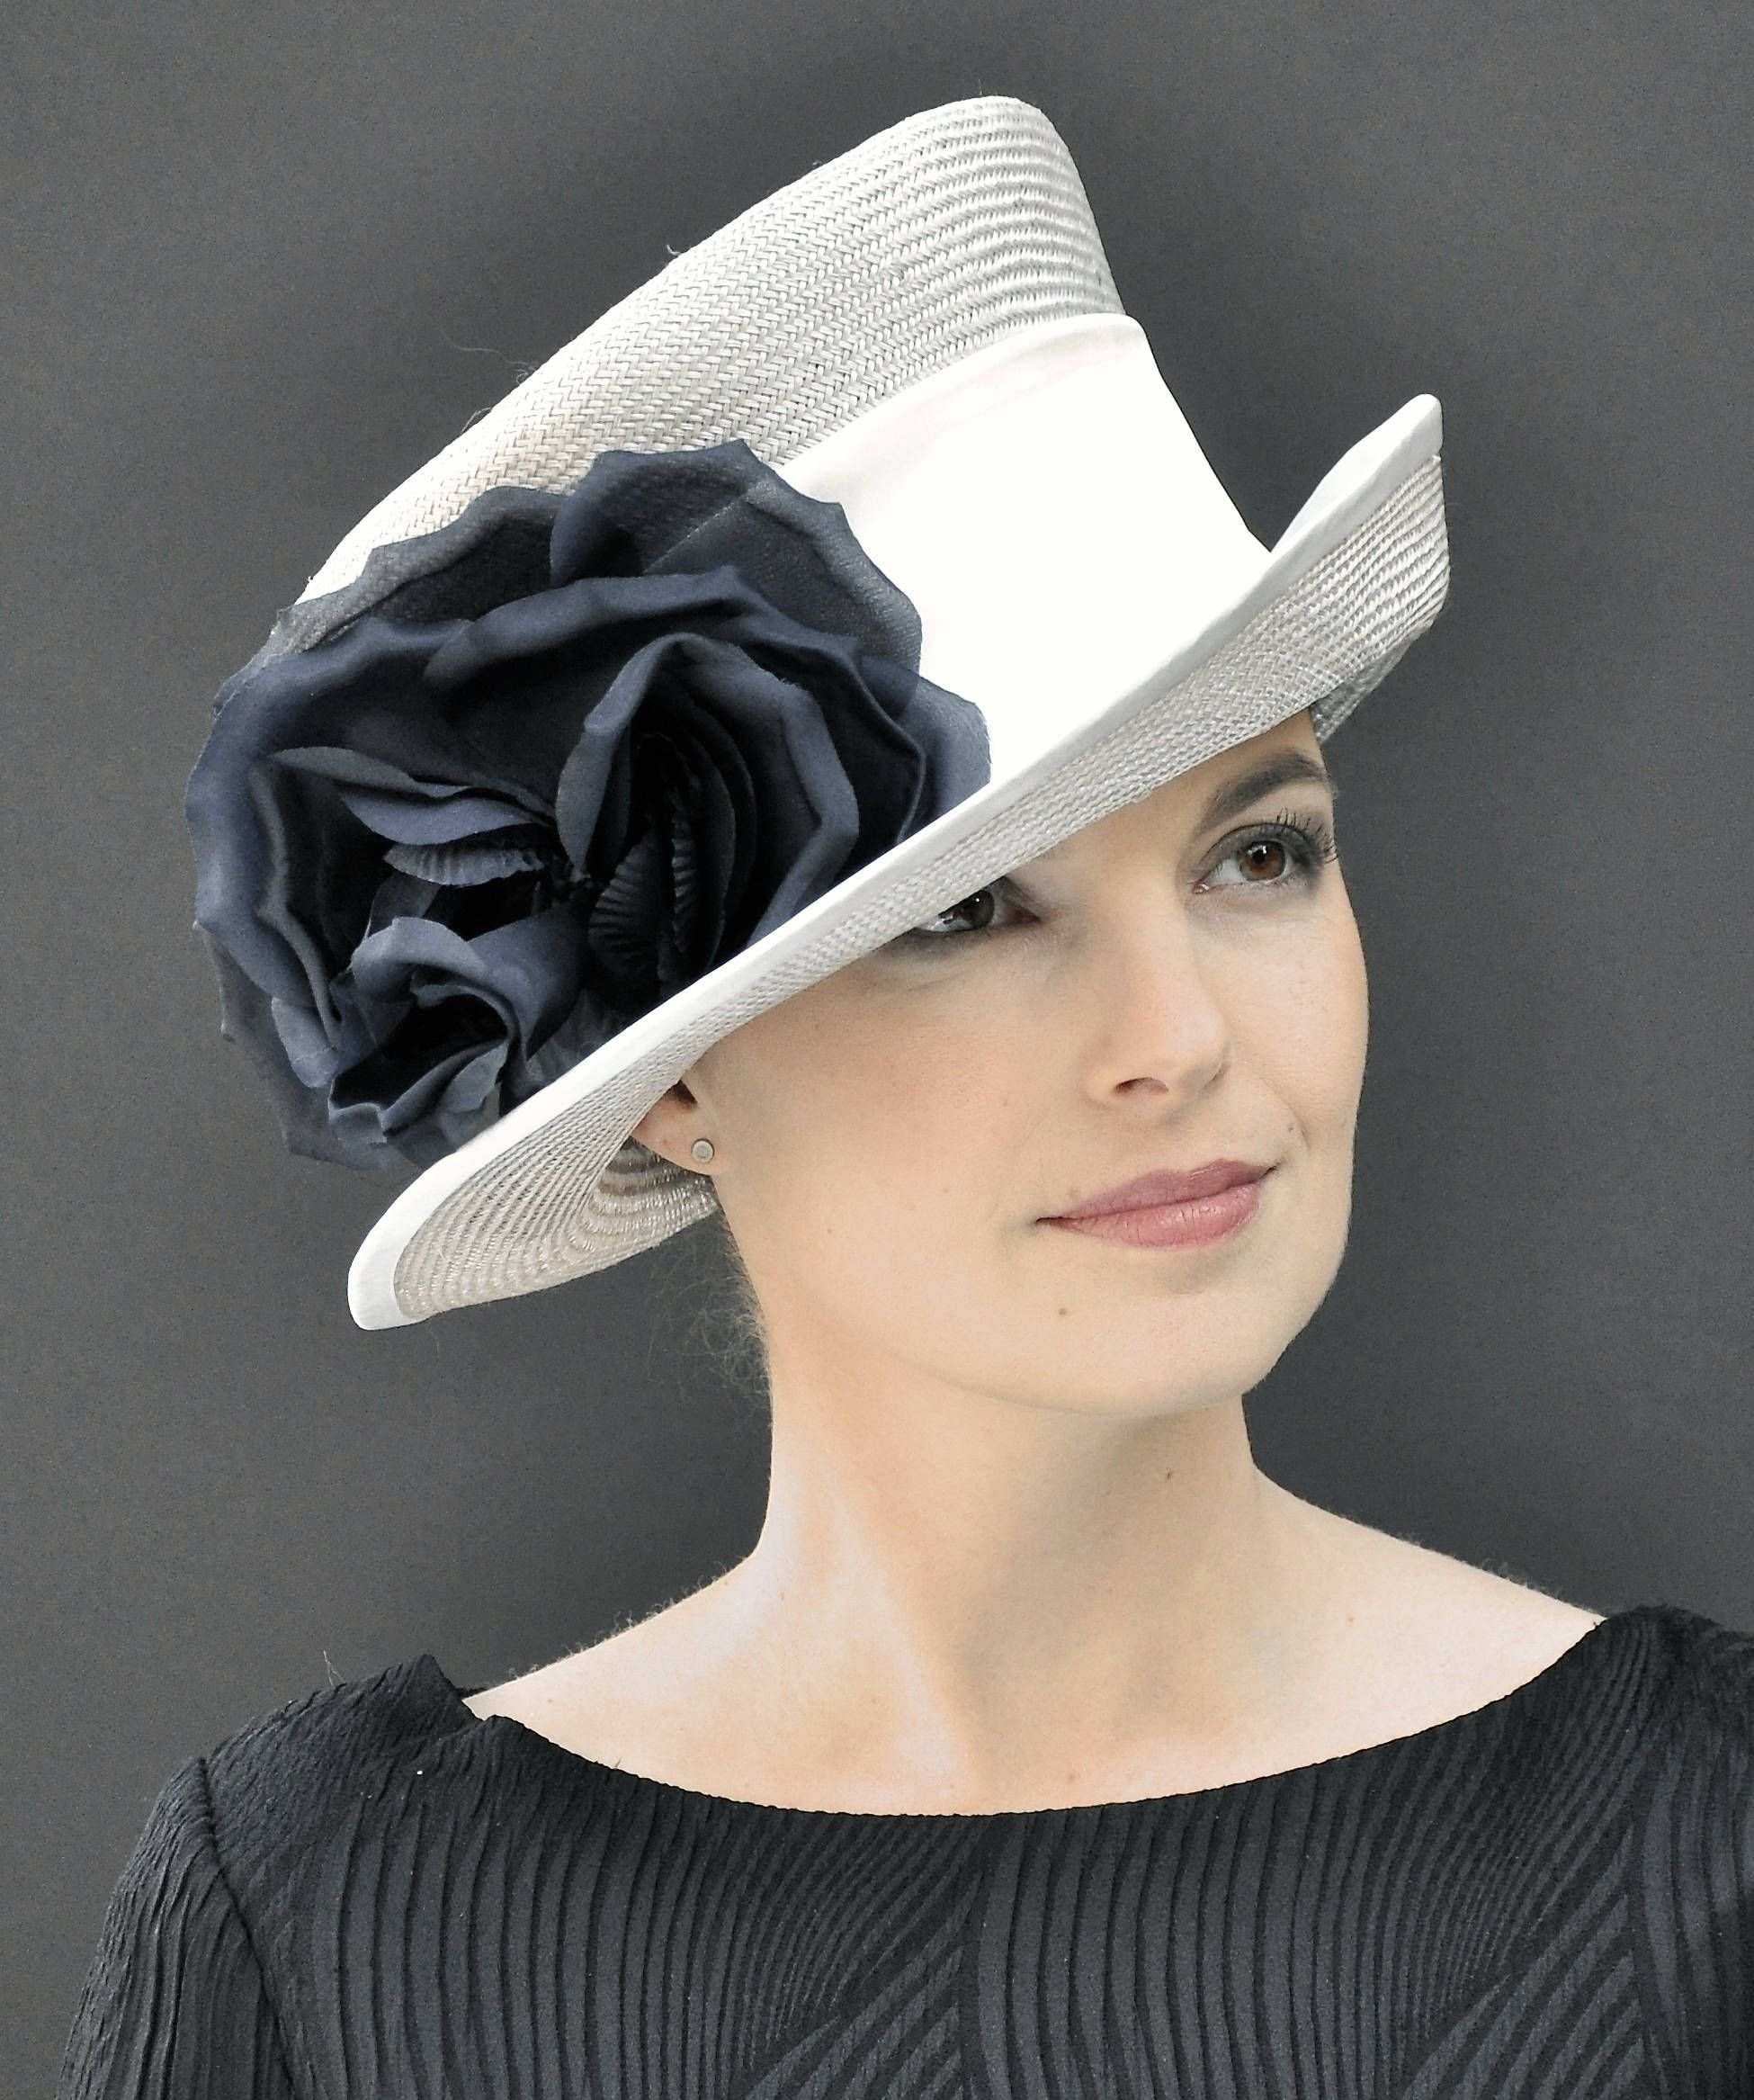 lower price with buy popular for whole family Ladies formal hat, wedding hat, dressy hat, Kentucky Derby ...